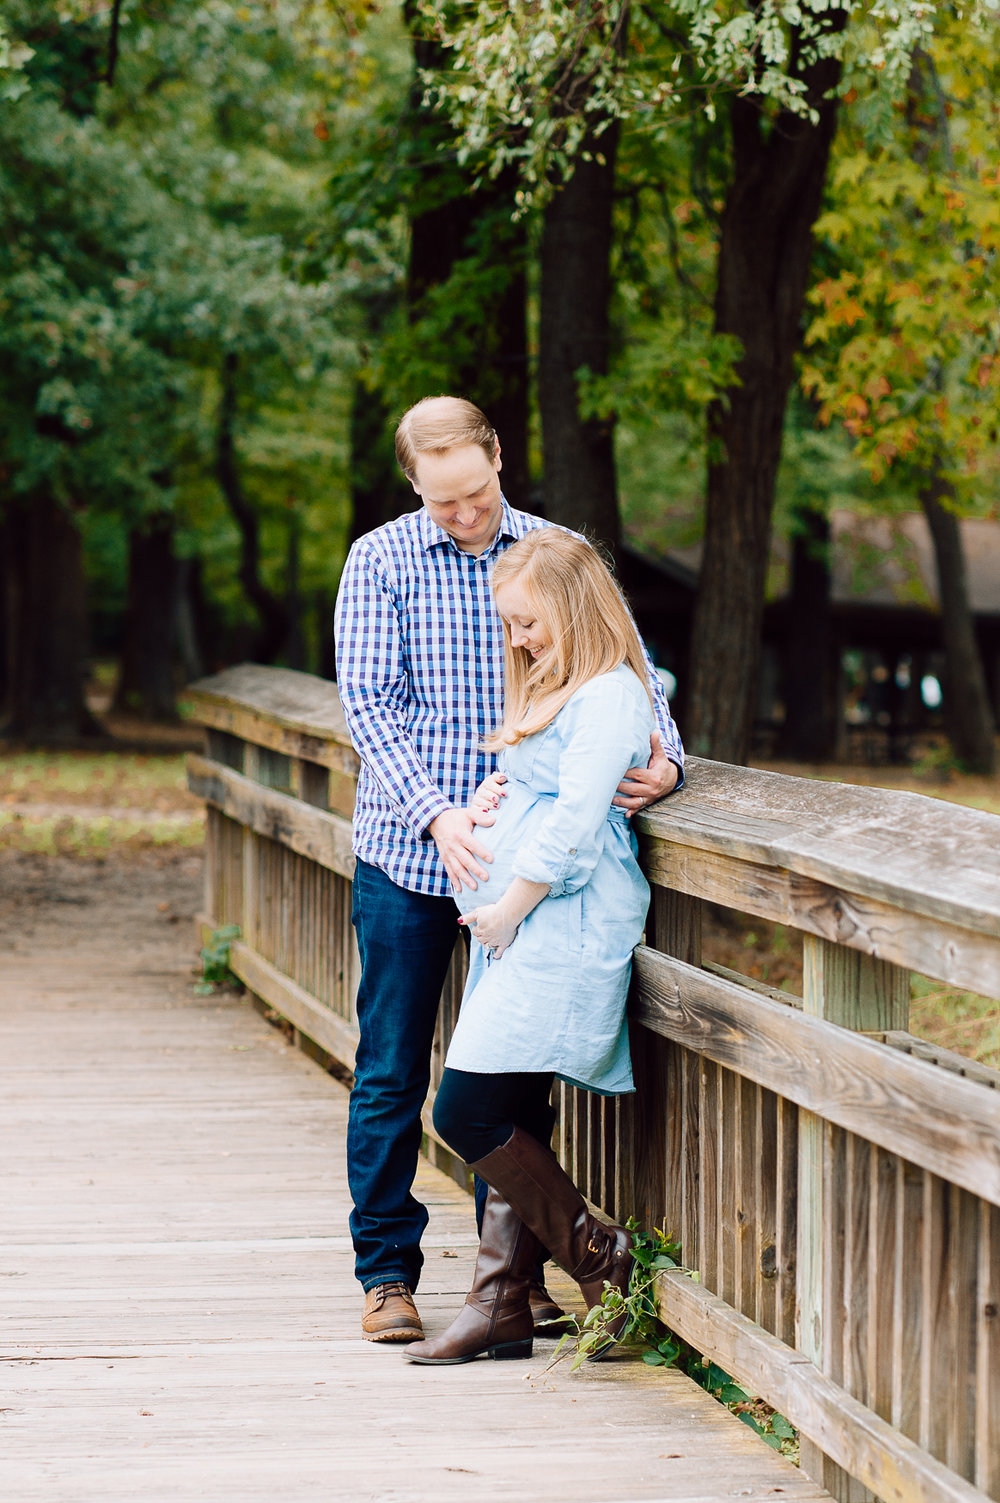 maternity_fallphotos_fredericksburgphotographer_leesylvania_youseephotography_Heather (15).jpg